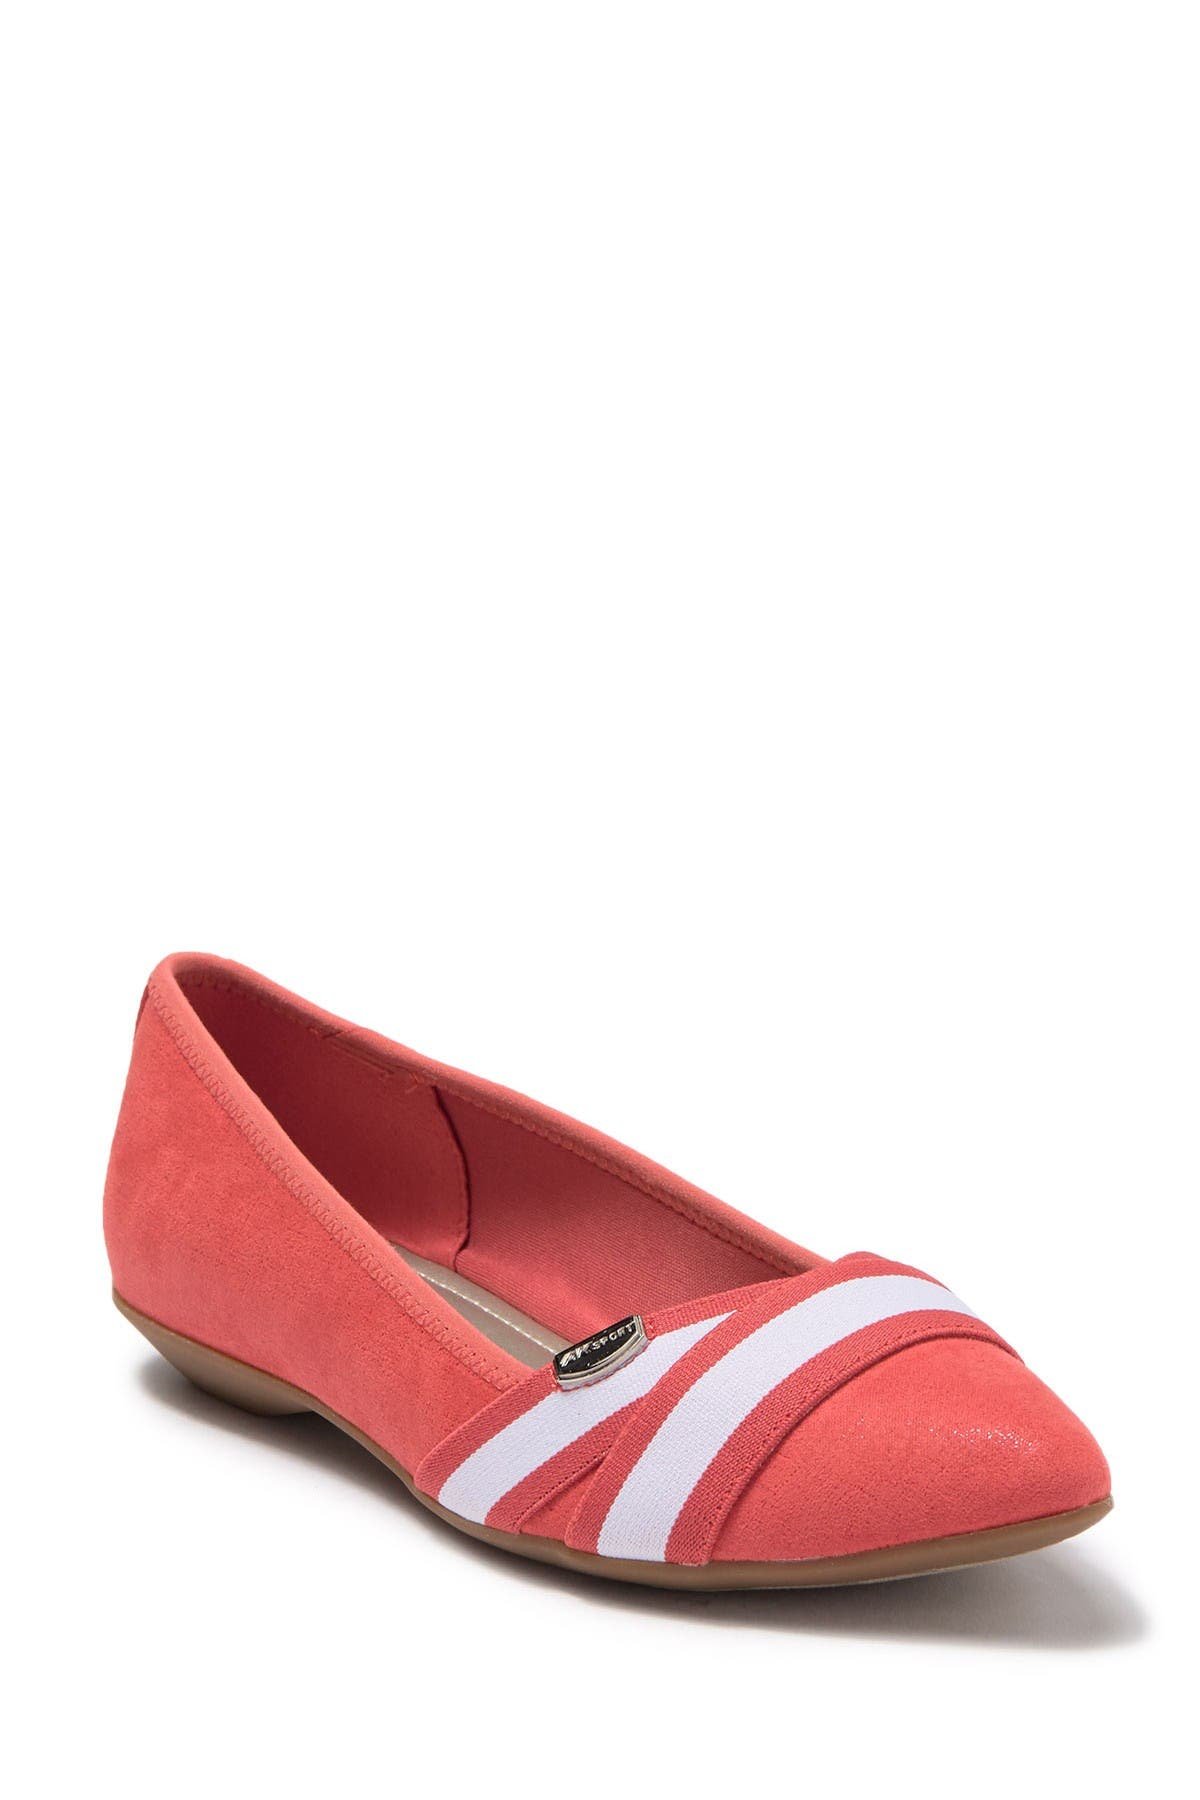 Image of Anne Klein Ozella Pointed Toe Flat